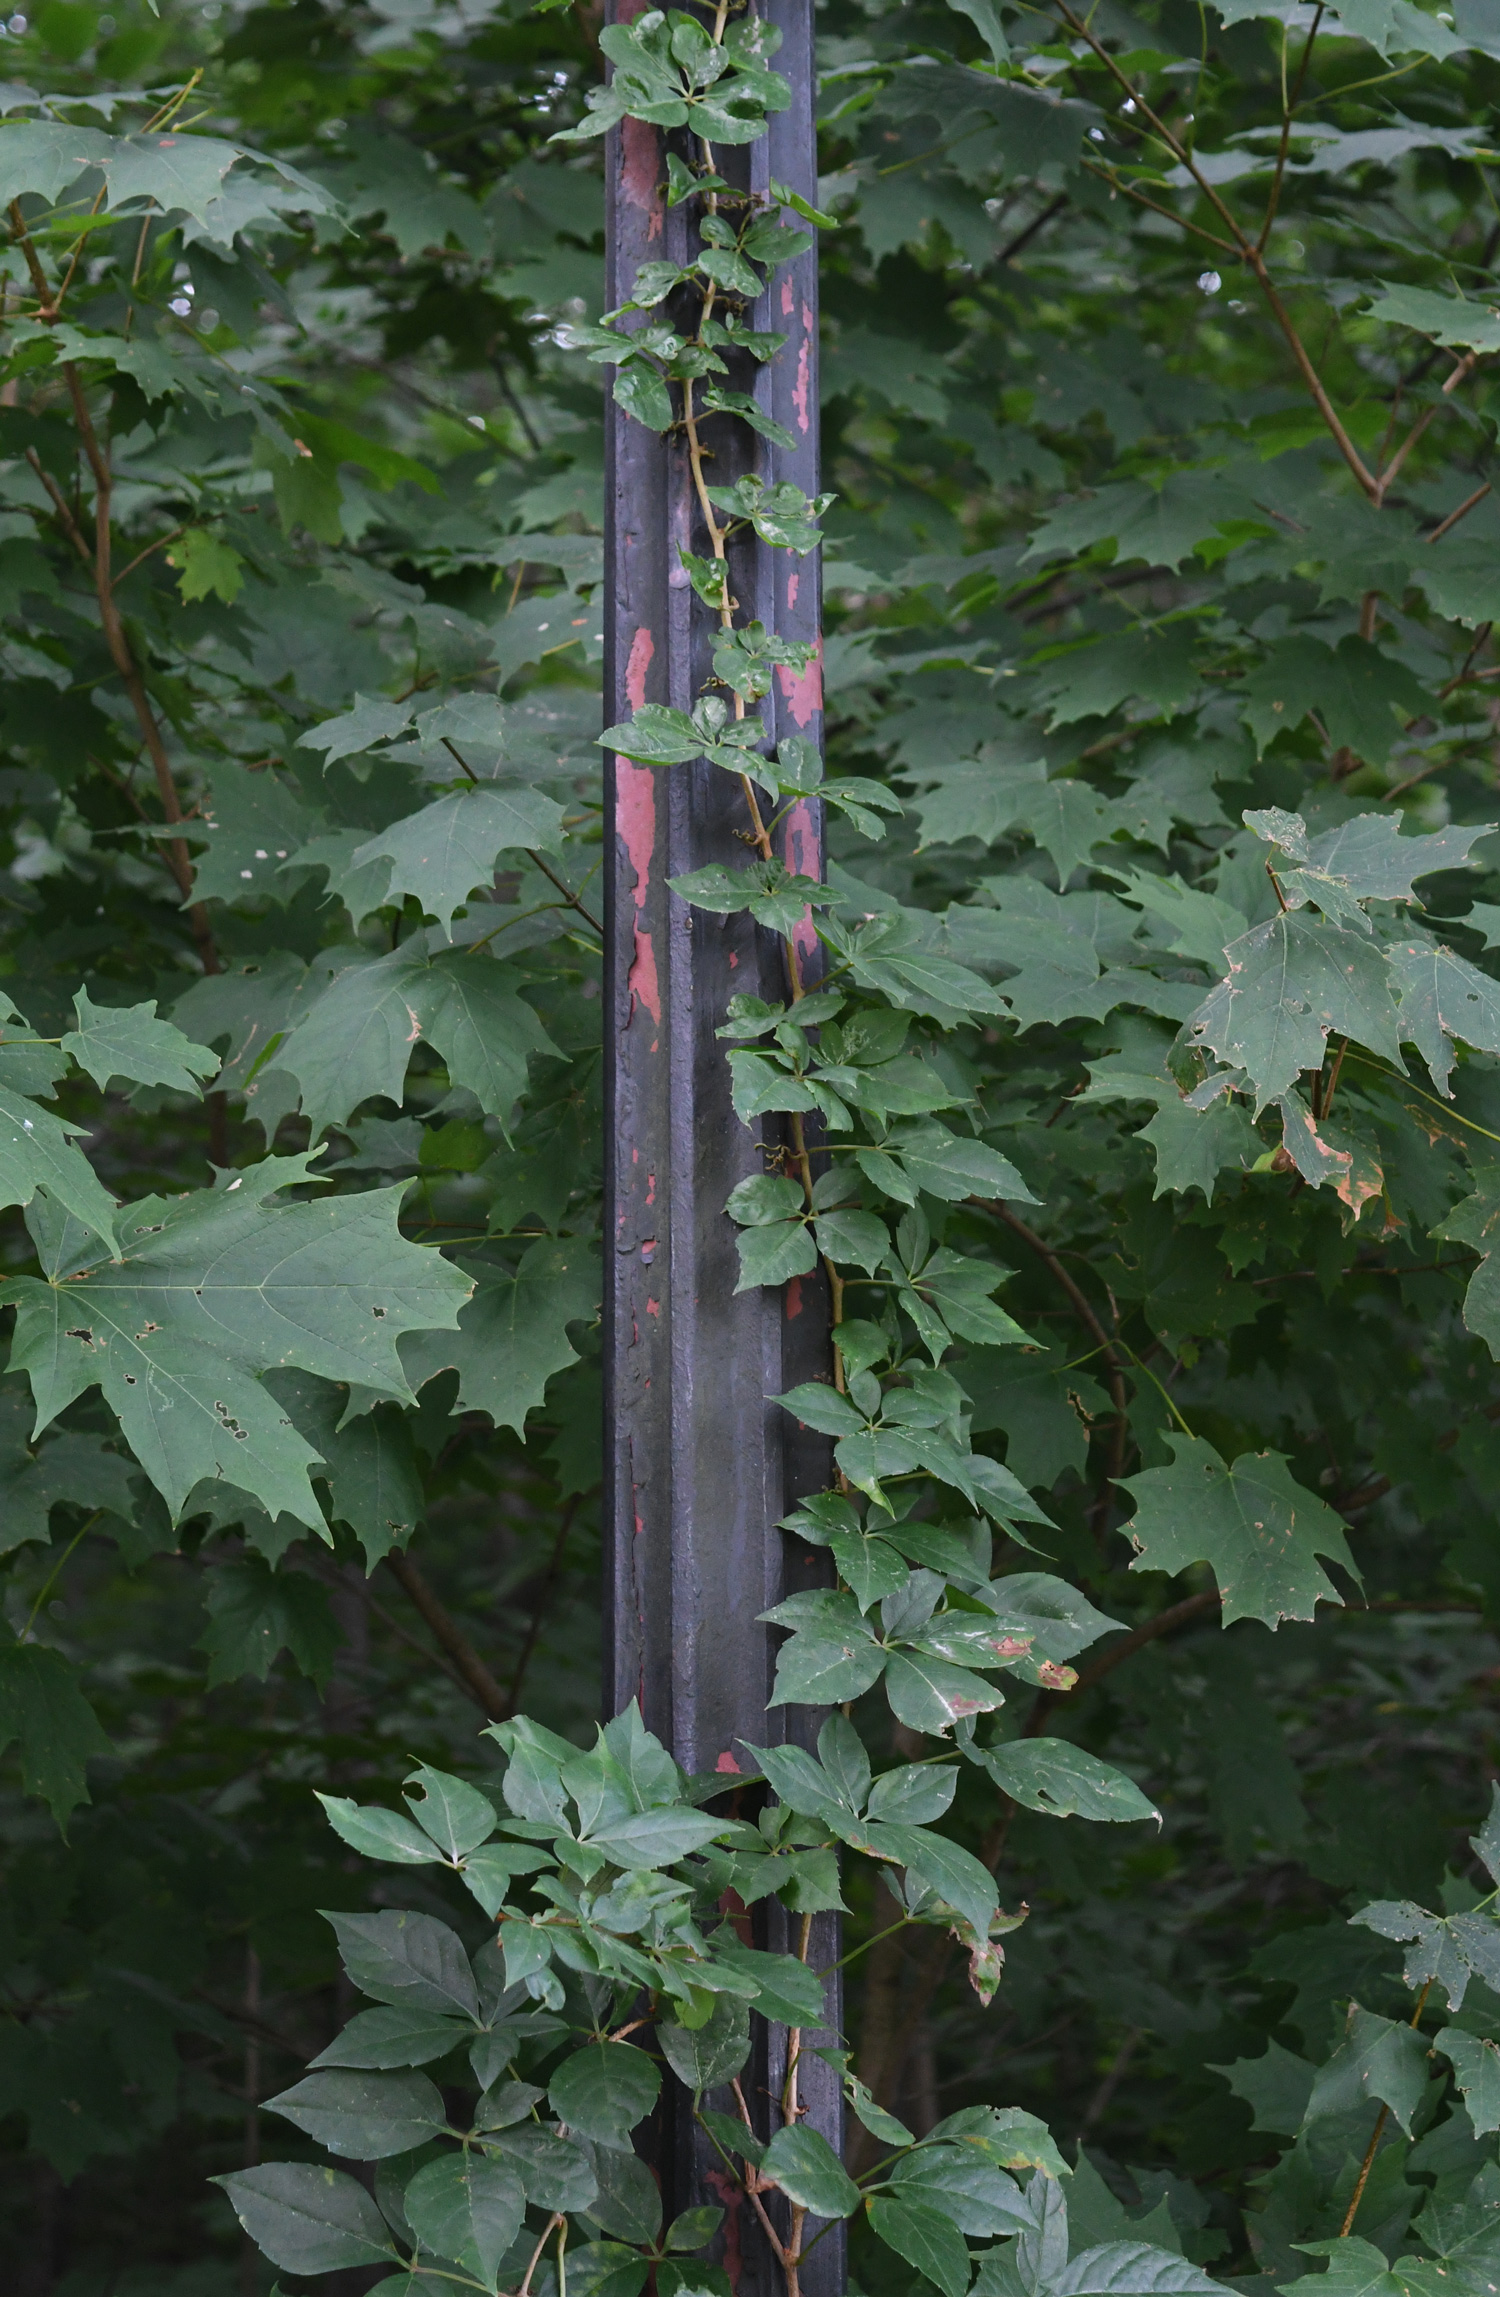 Ivy on lamppost, Prospect Park